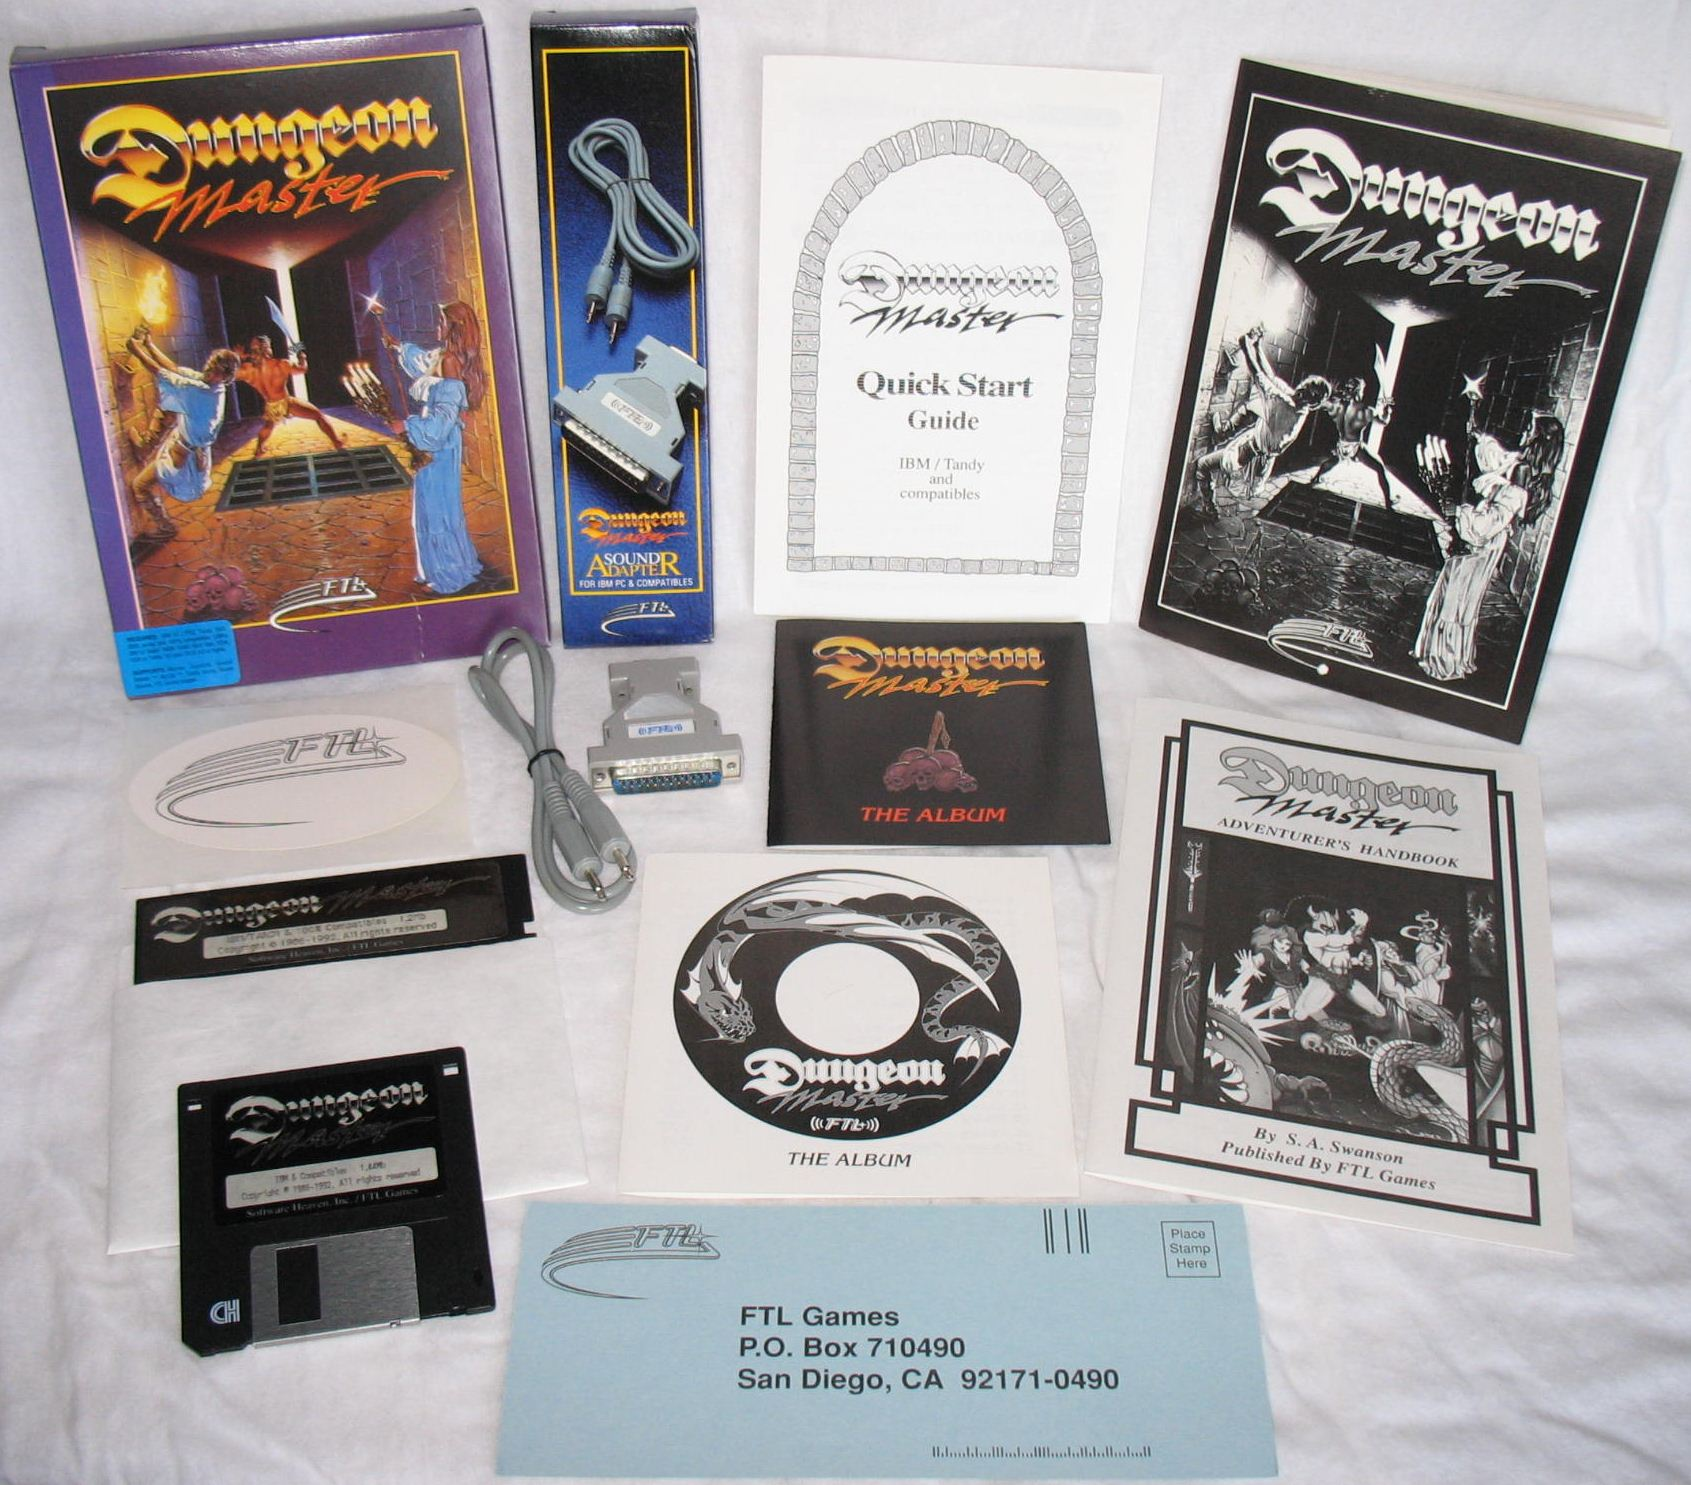 Dungeon Master for PC with FTL Sound Adapter (US Release) - Overview